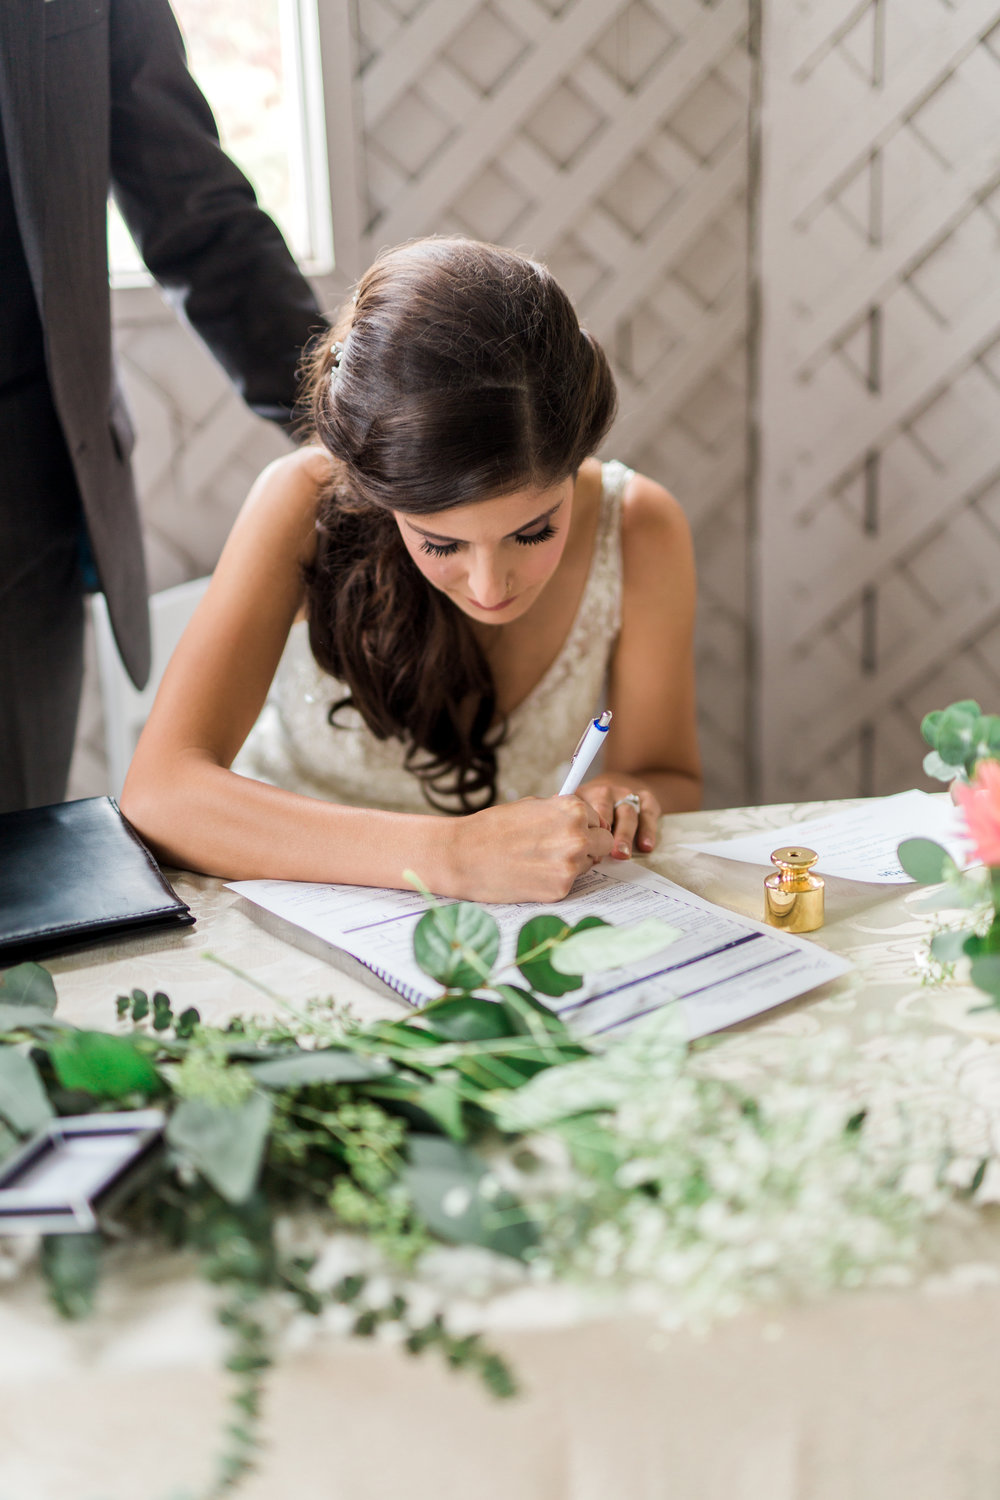 Amir-Golbazi-Danielle-Giroux-Photography_Toronto-Wedding_Cedarwood_Rachel-Paul_210.jpg